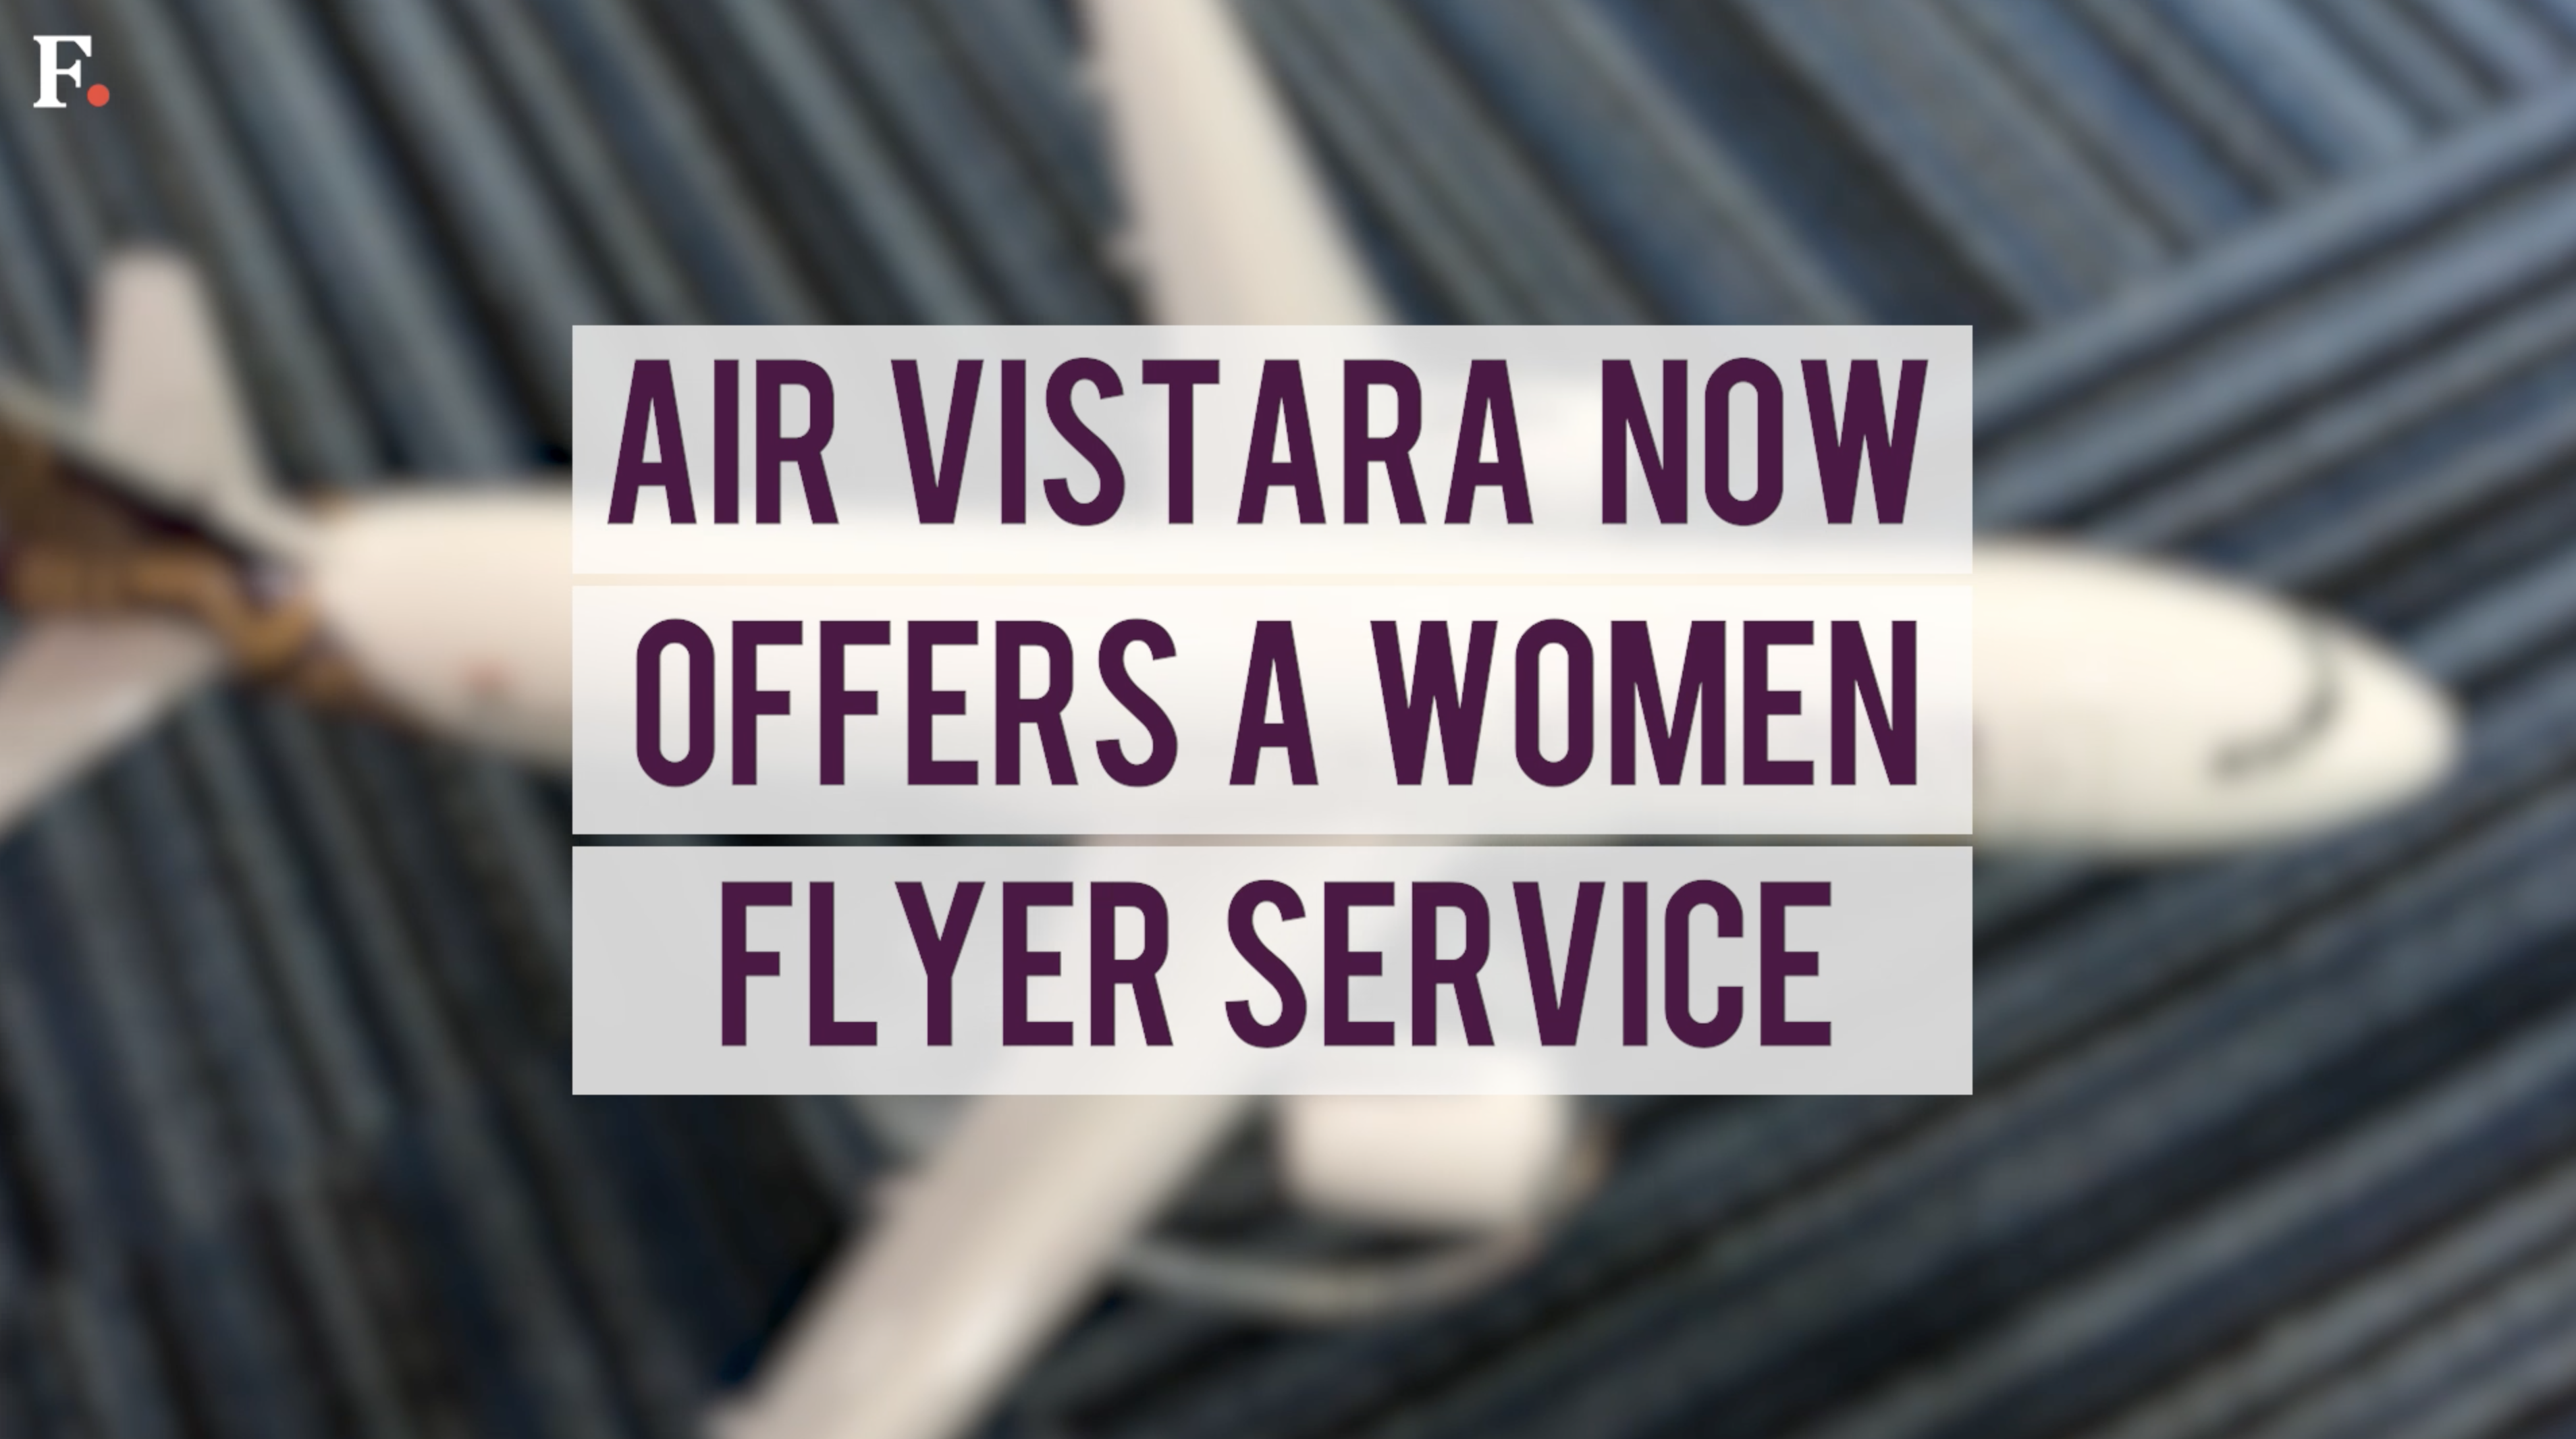 Vistara starts Woman Flyer service, seeks to address sexual harassment during travel